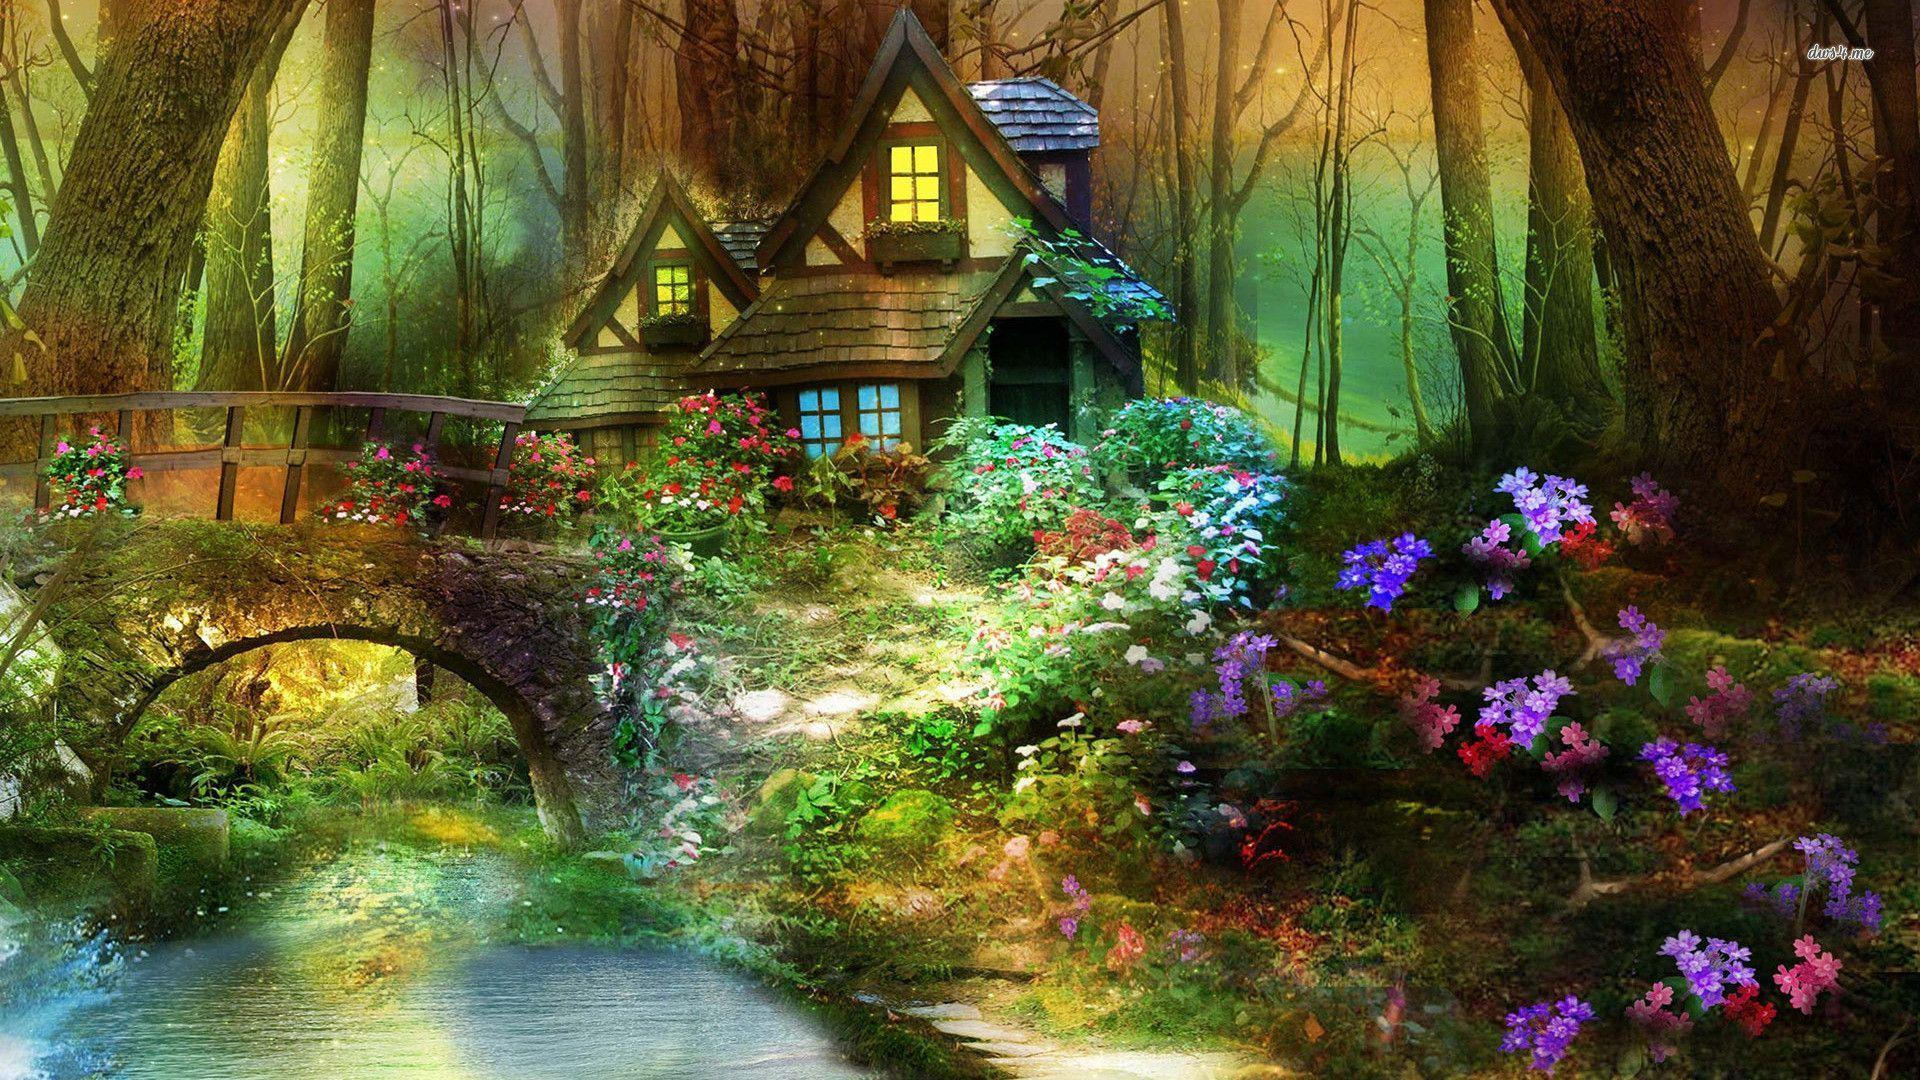 Enchanted Forest Wallpapers Top Free Enchanted Forest